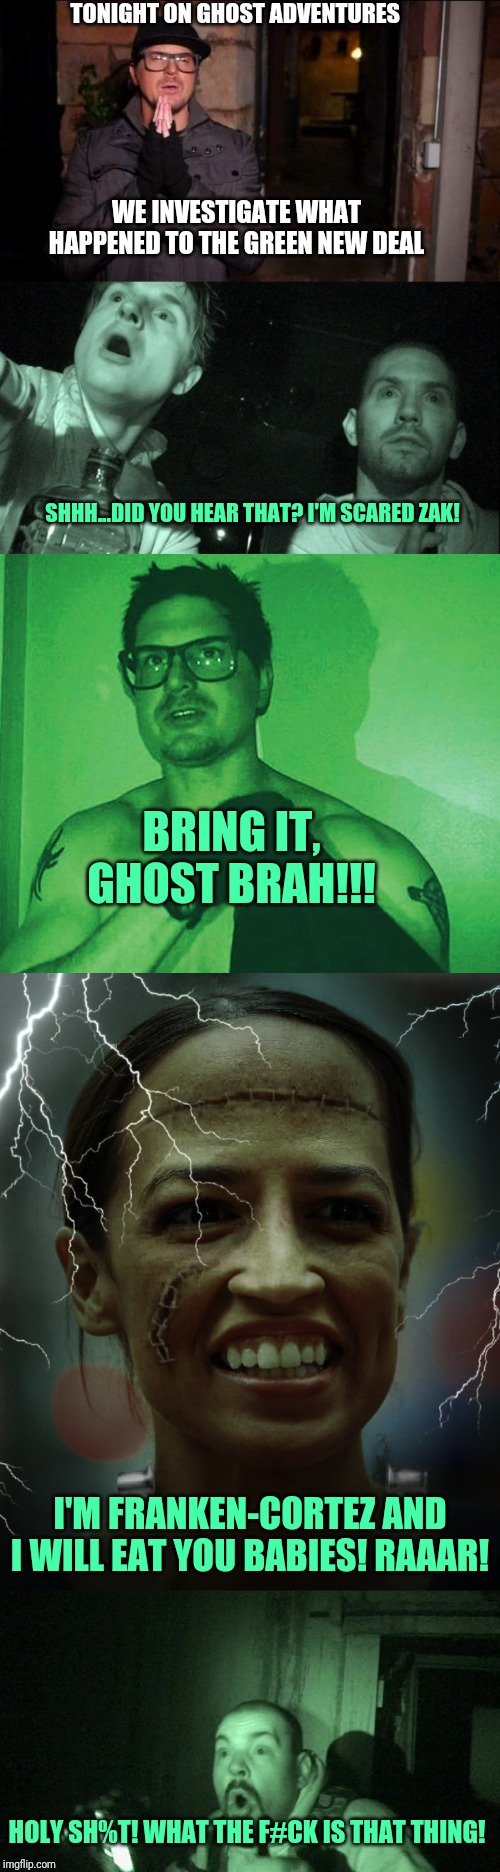 Ghost Adventures, Green New Deal Edition | TONIGHT ON GHOST ADVENTURES WE INVESTIGATE WHAT HAPPENED TO THE GREEN NEW DEAL SHHH...DID YOU HEAR THAT? I'M SCARED ZAK! BRING IT, GHOST BRA | image tagged in ghost adventures,green new deal,alexandria ocasio-cortez,frankenstein,happy halloween,eat the babies | made w/ Imgflip meme maker